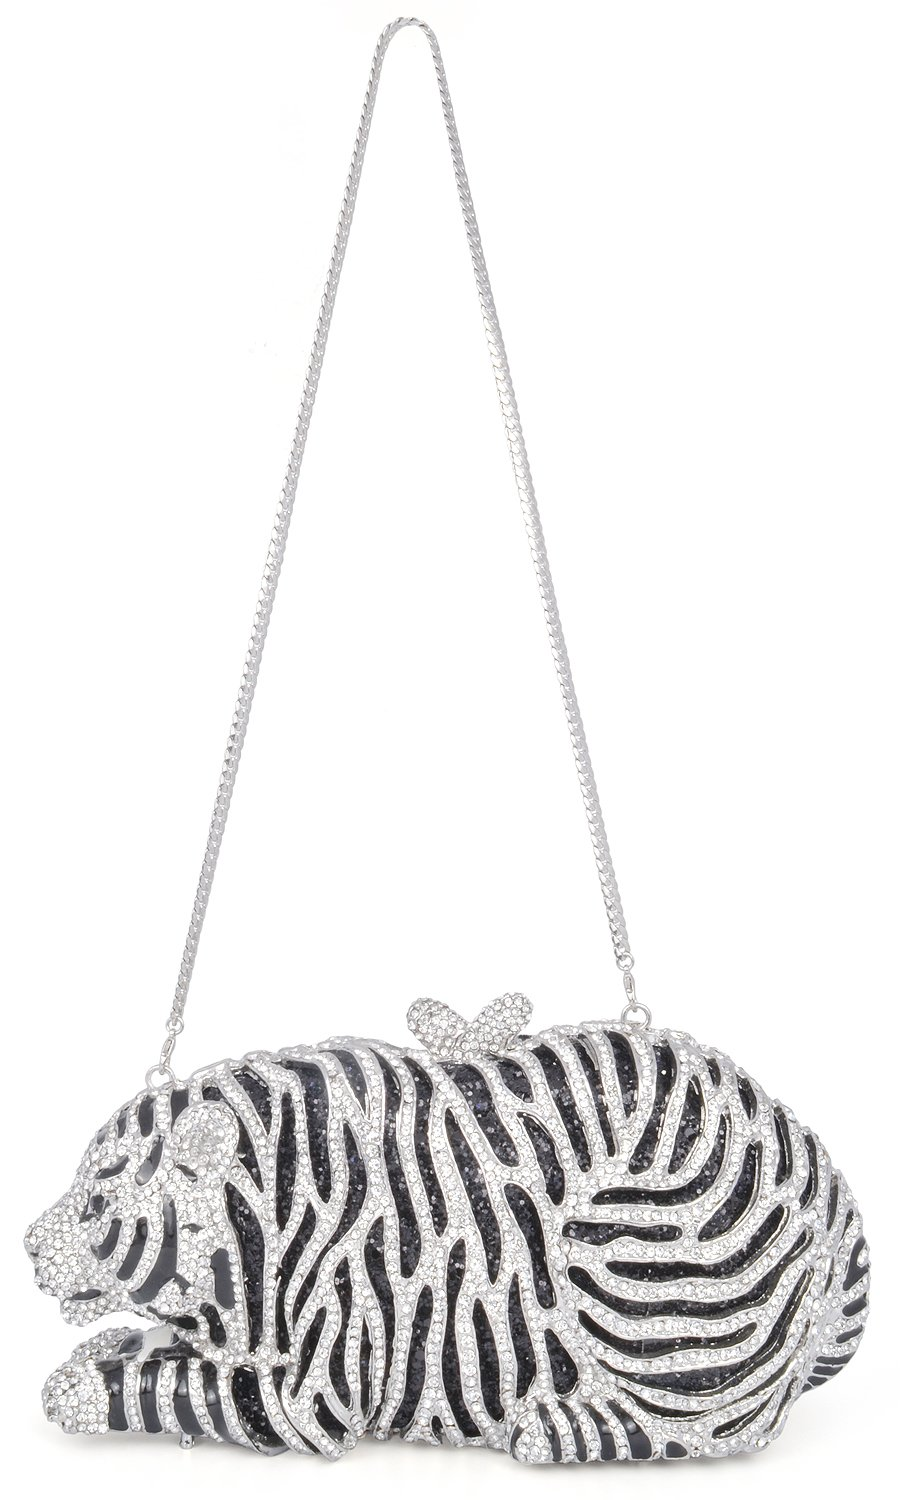 mossmon Luxury Crystal Clutches For Women Tiger Evening Bag (Silver) by Mossmon (Image #3)